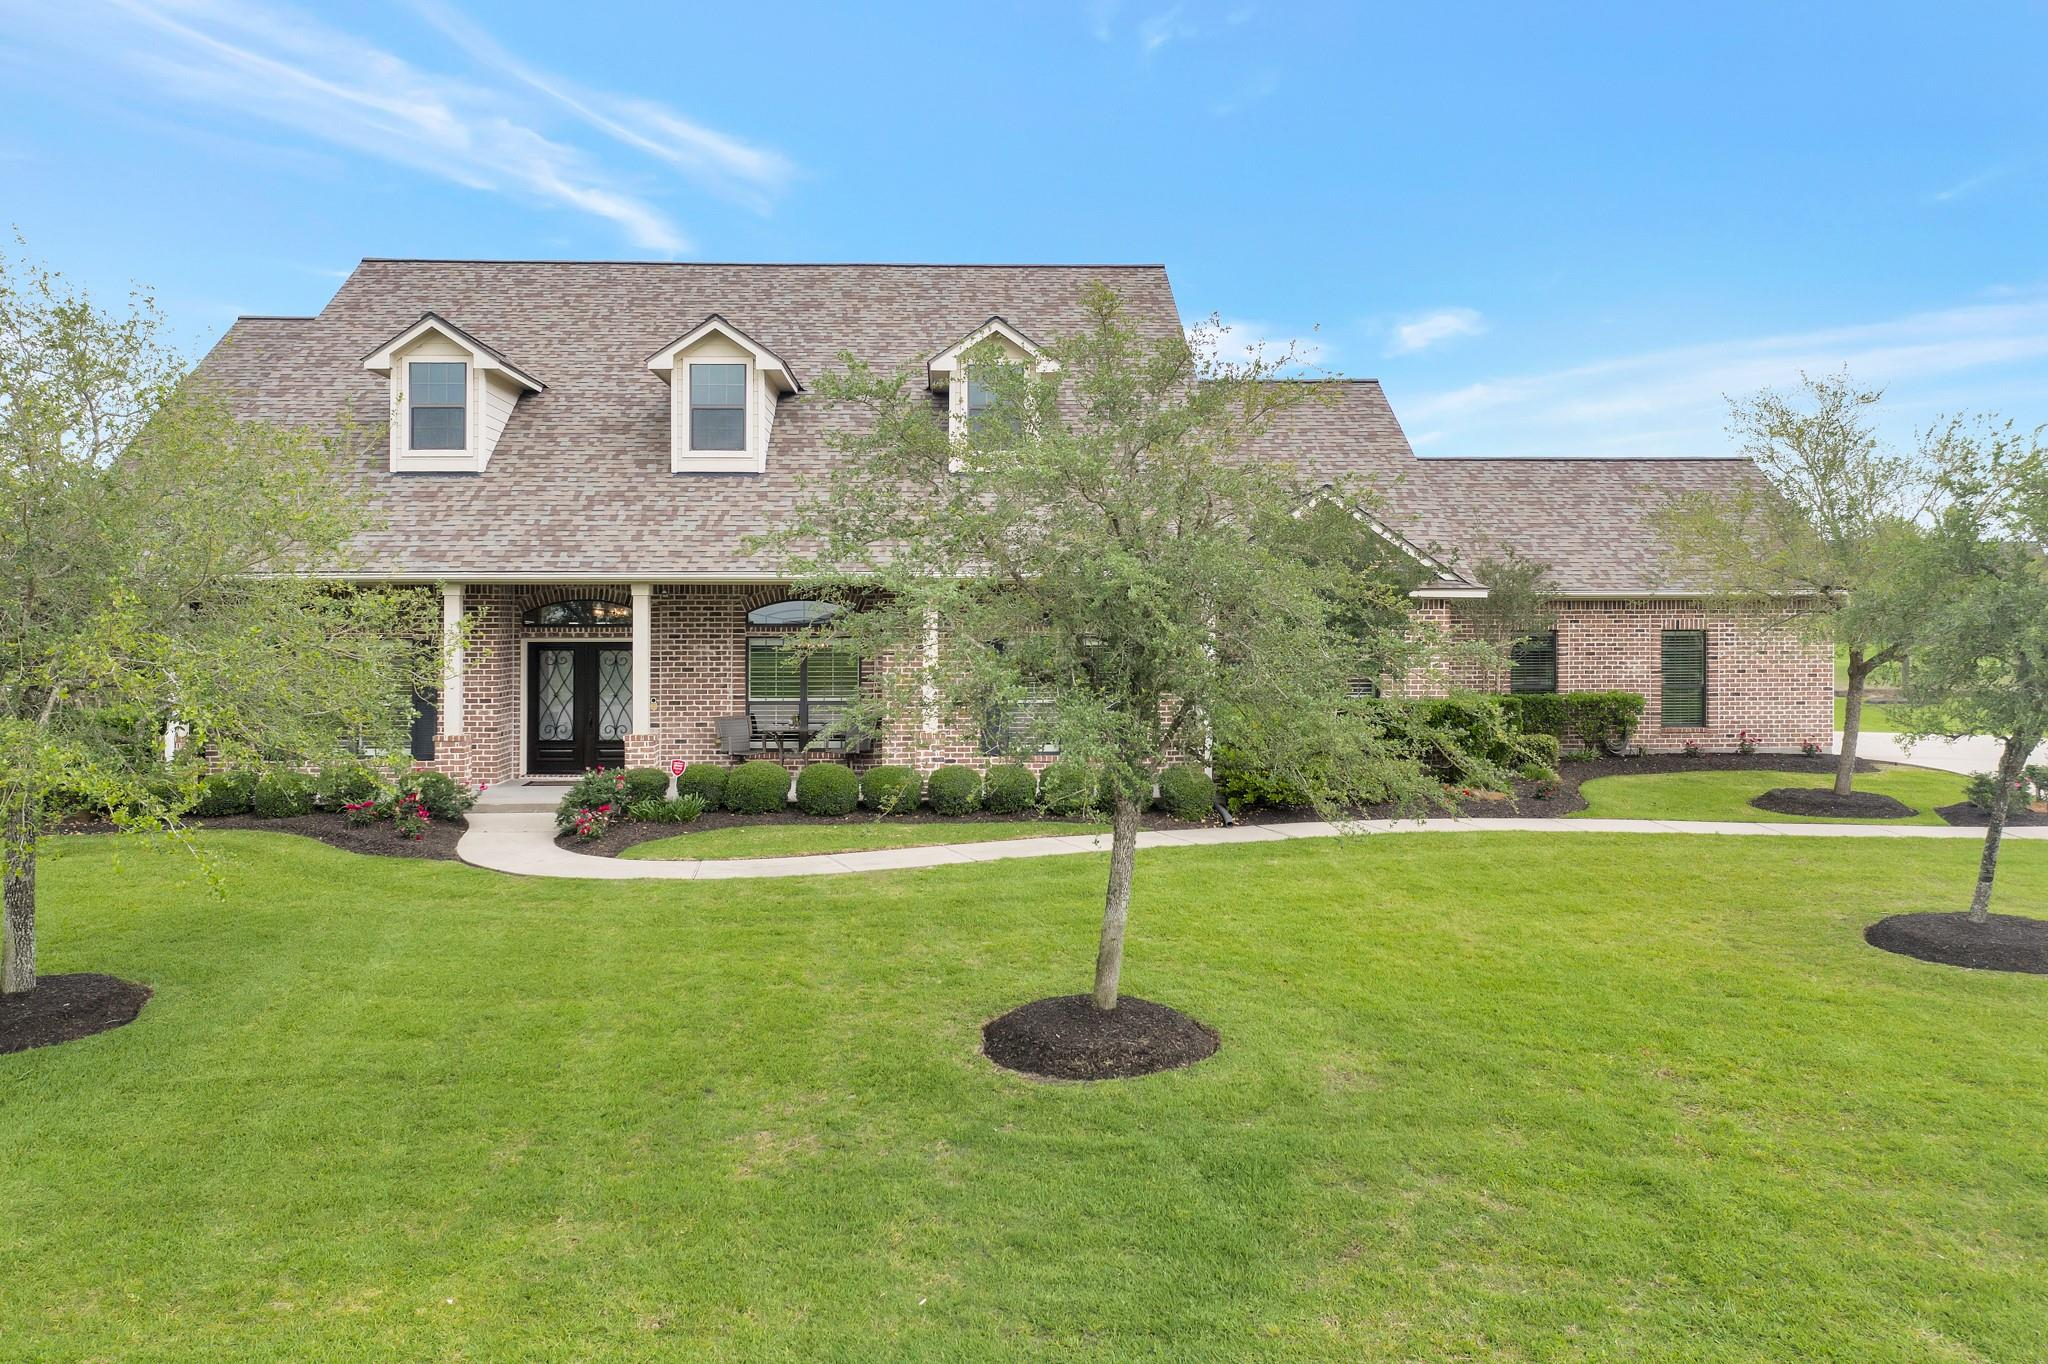 411 Pine View Property Photo - Dickinson, TX real estate listing